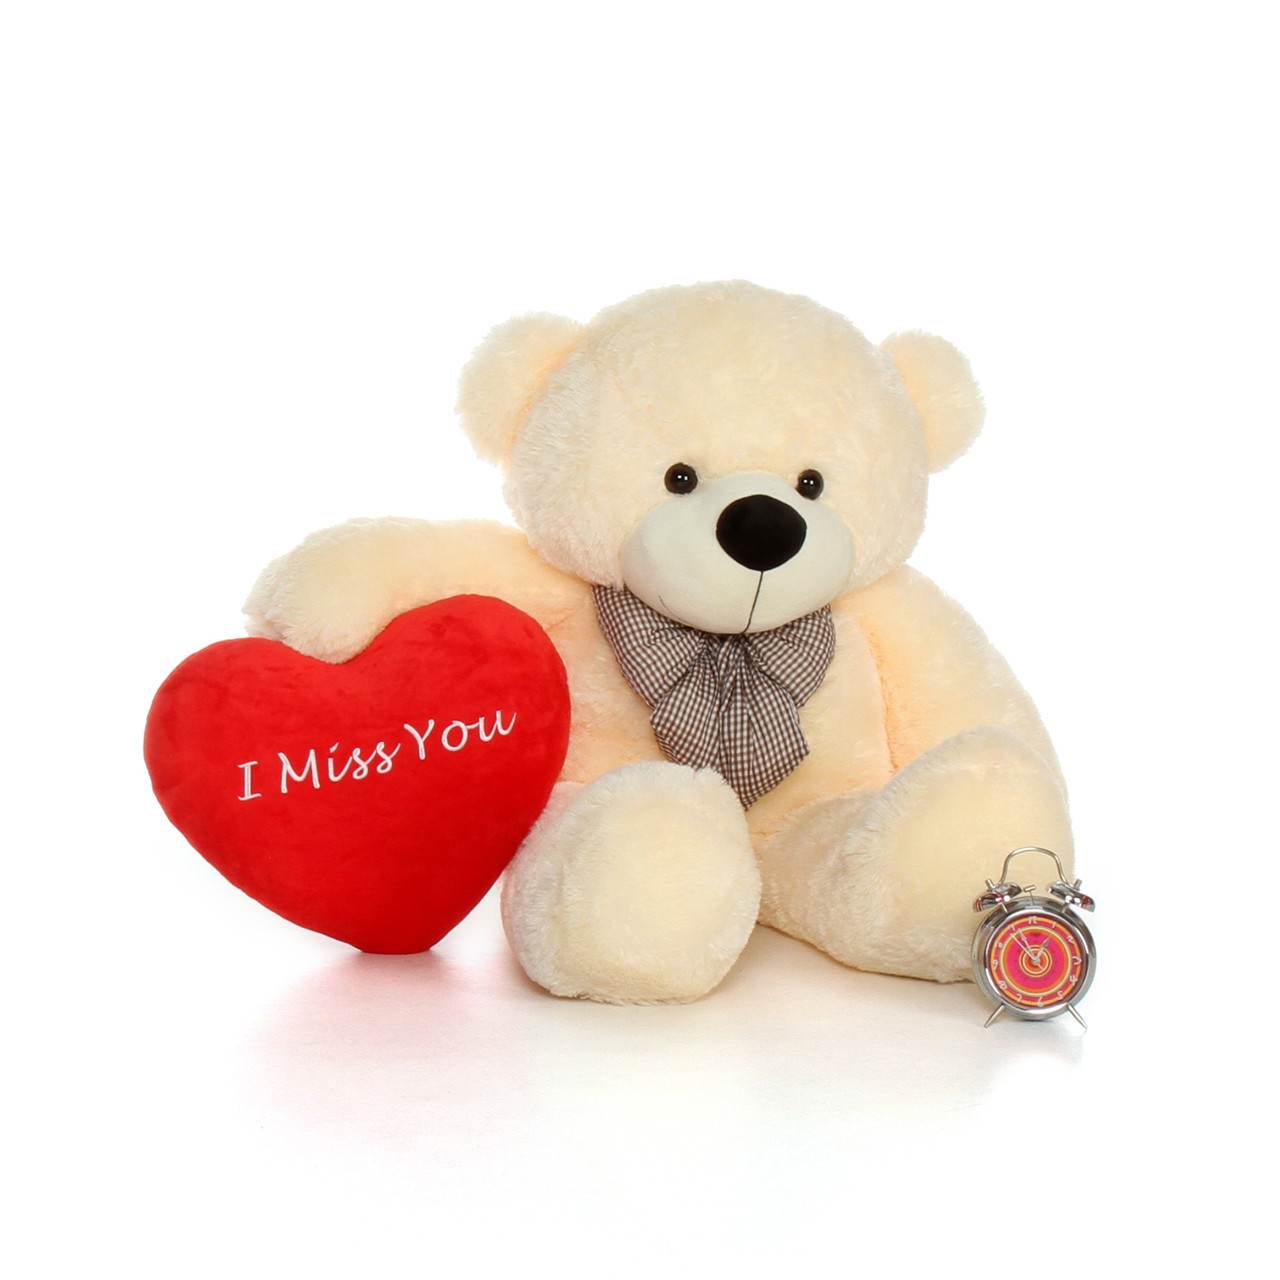 853414f3f26a 48in Big Valentine's Day Teddy Bear With Beautiful 'I Miss You' Red ...